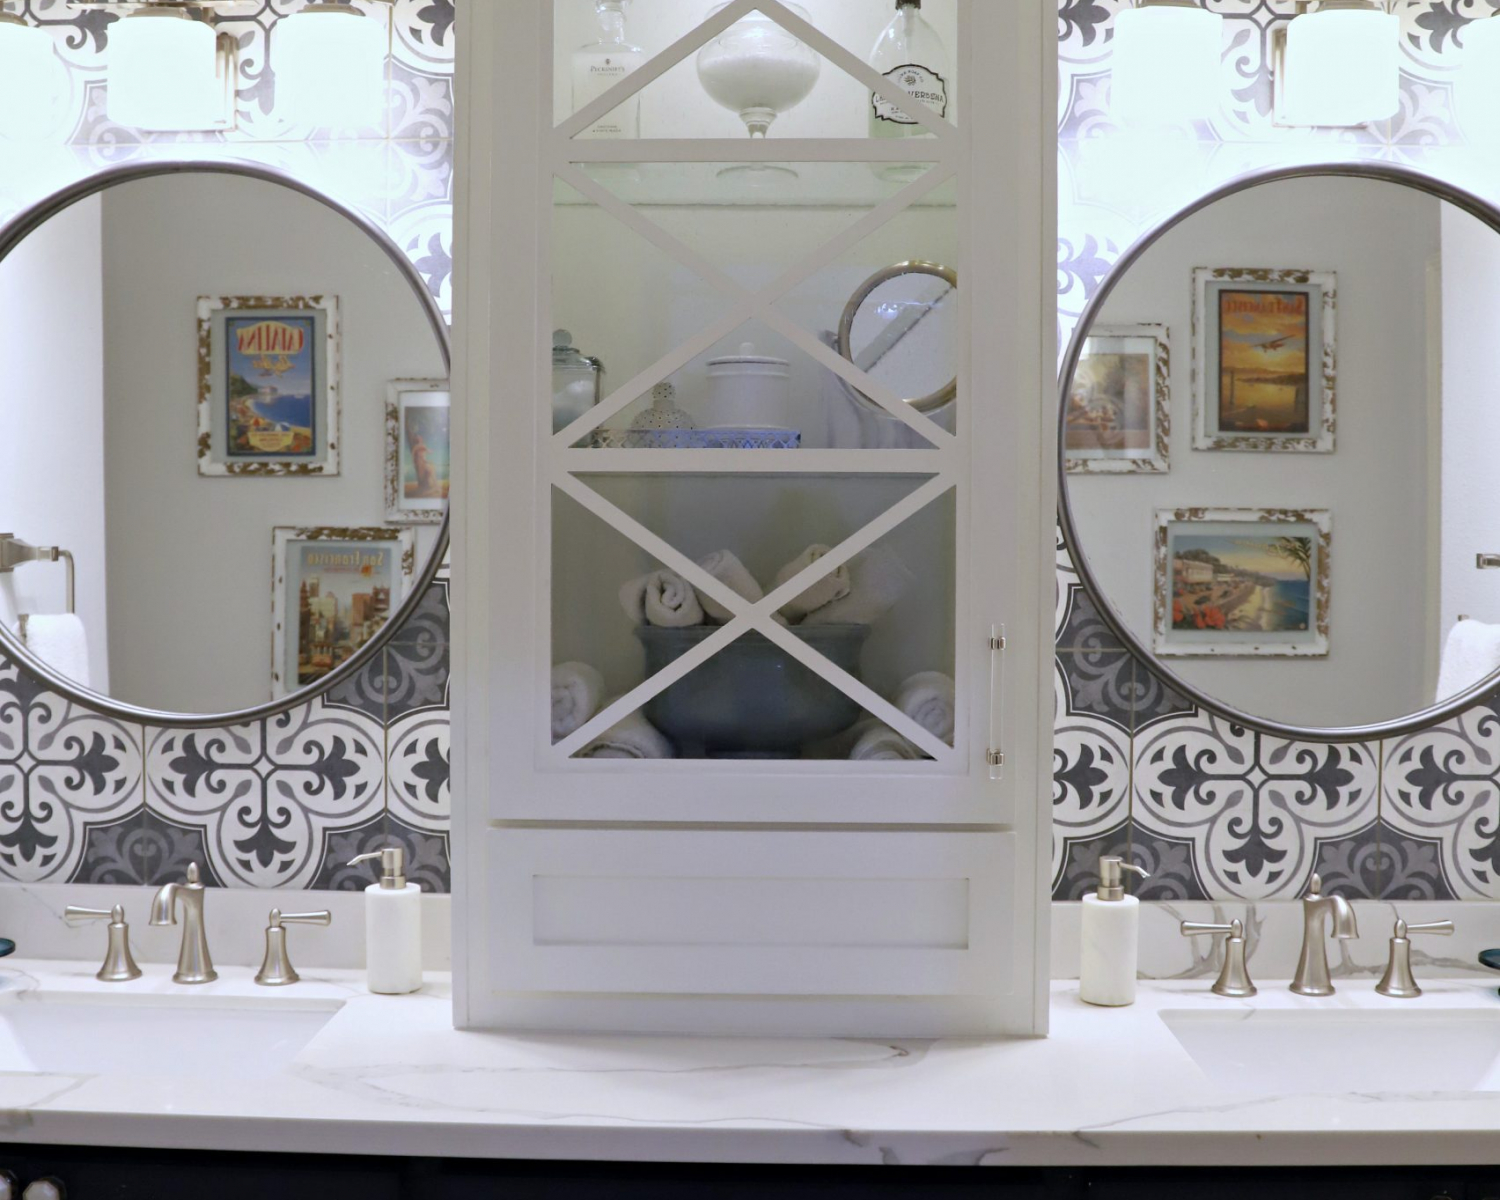 full-view-bathroom-renovation-linen-tower-overlays-aspiring-home-scaled